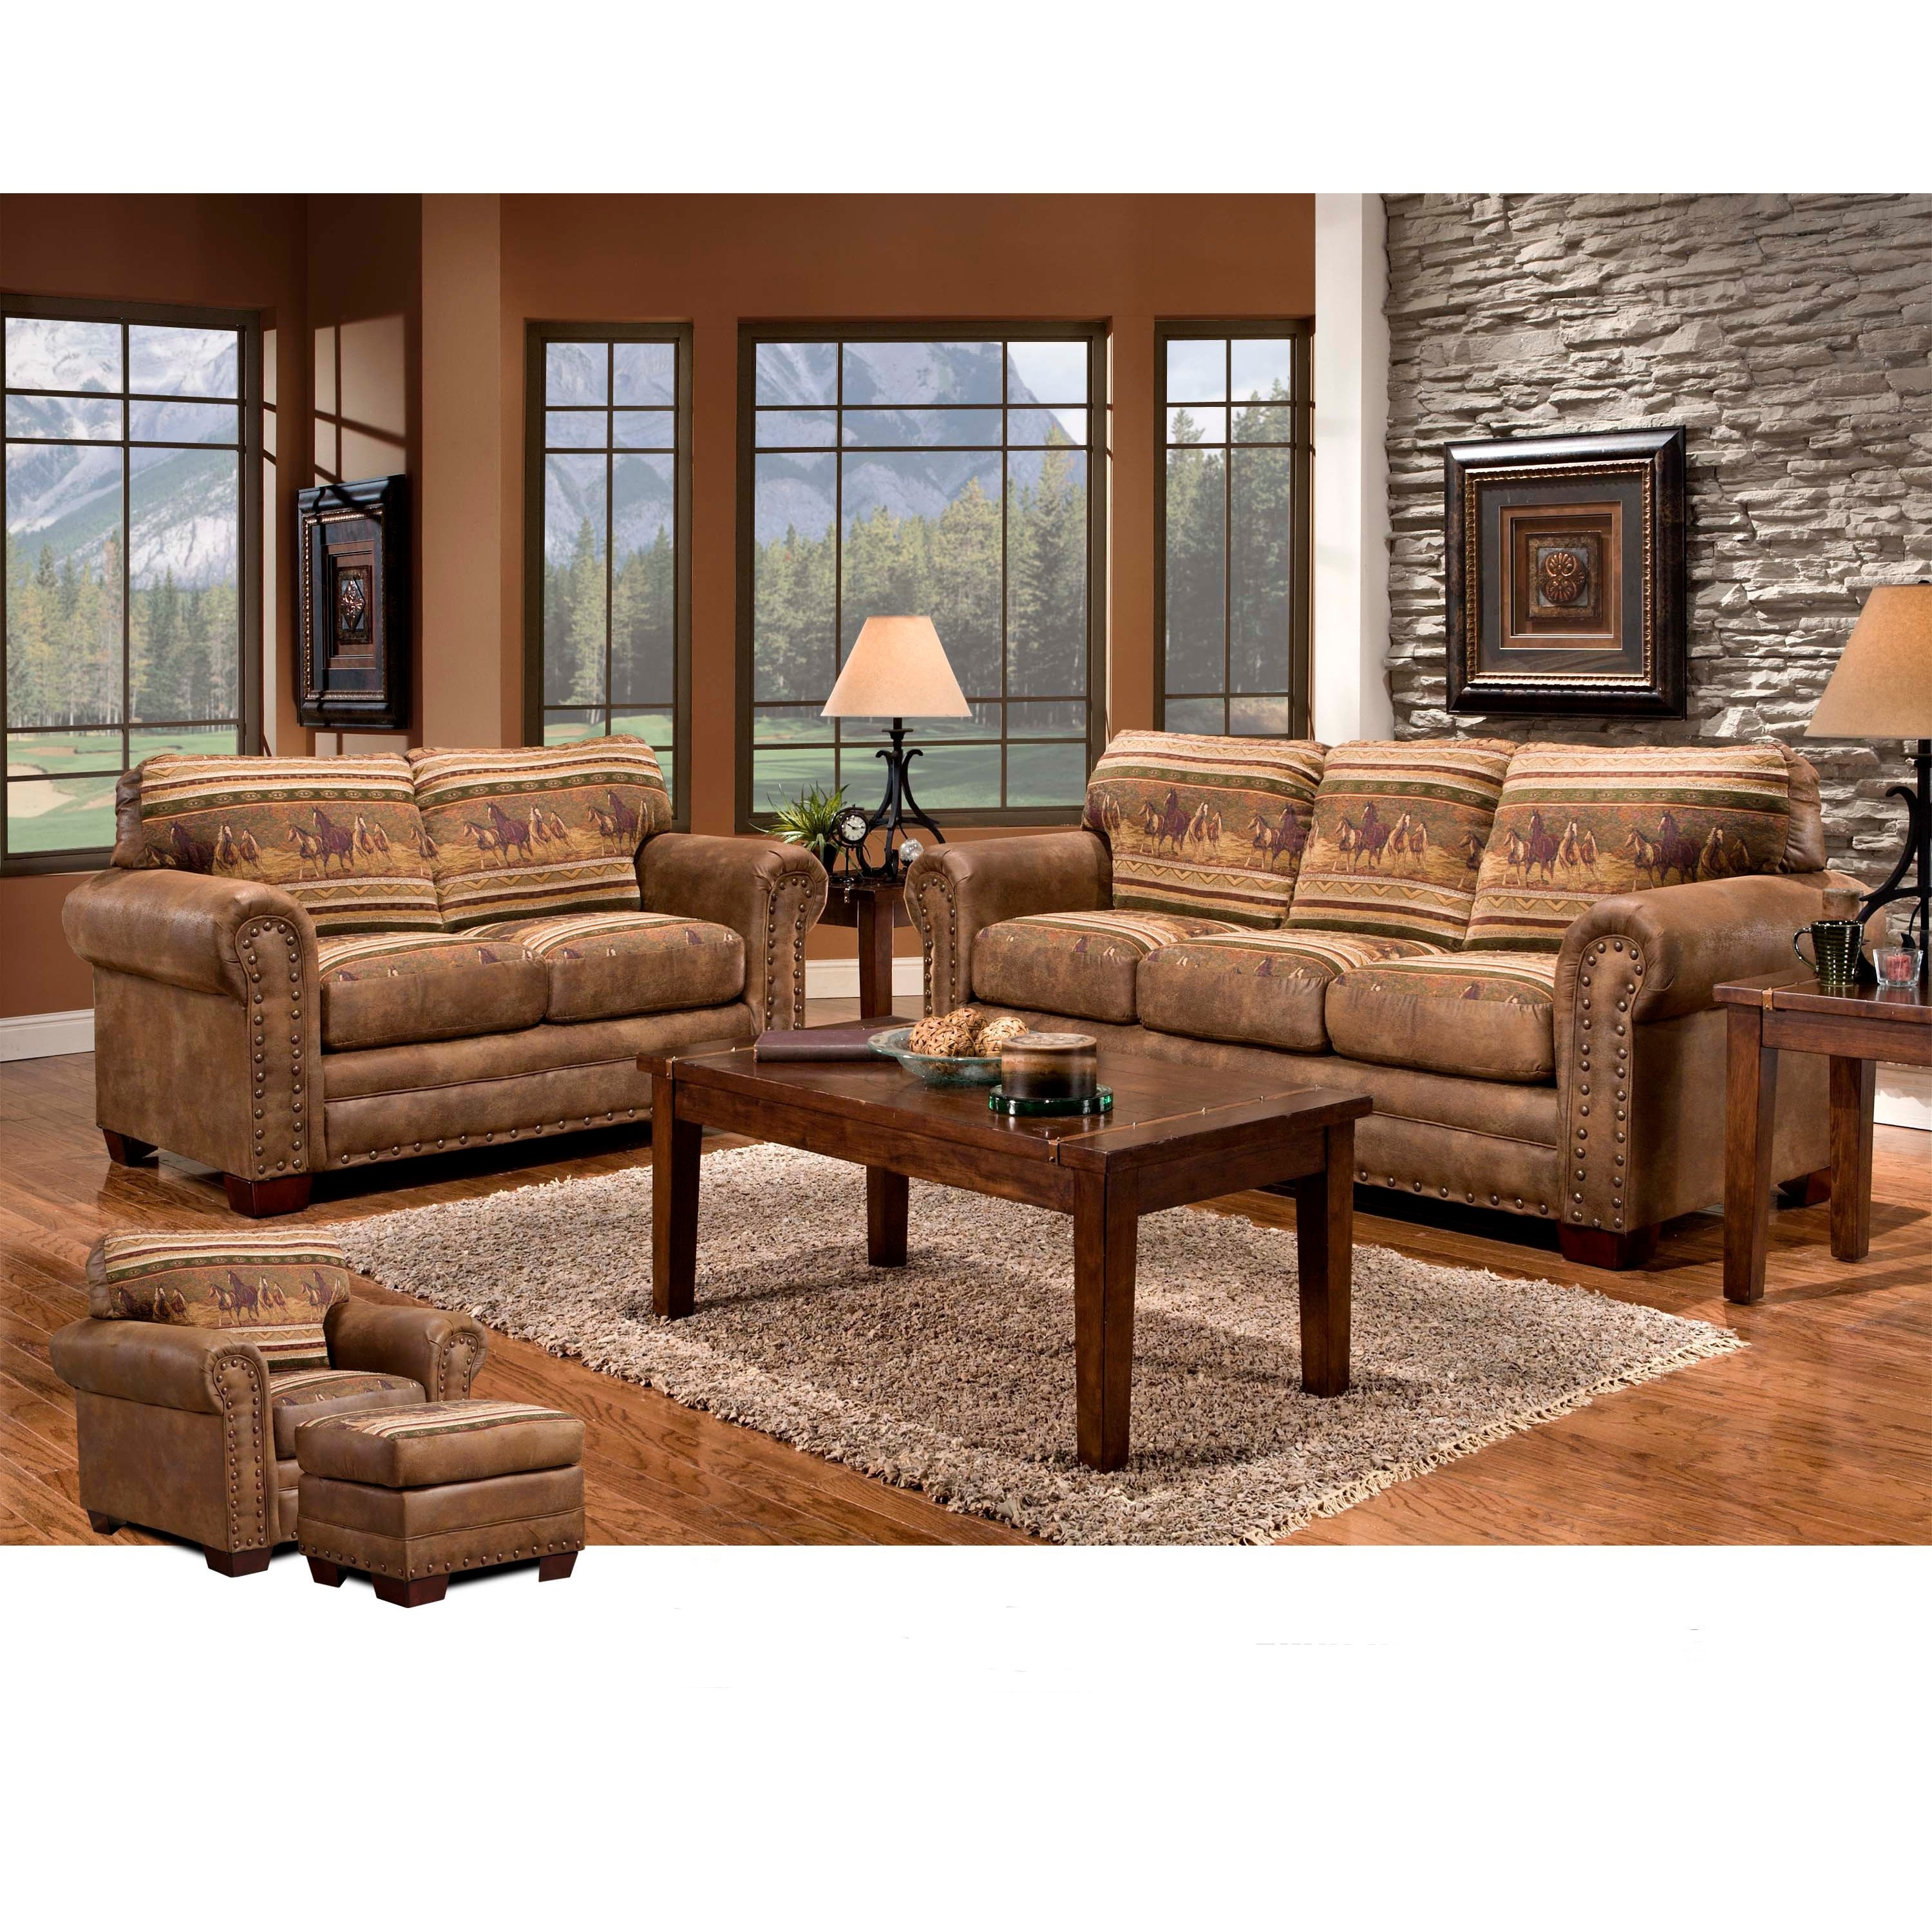 Cabela's American Wild Horses Lodge 4-piece Group with So...